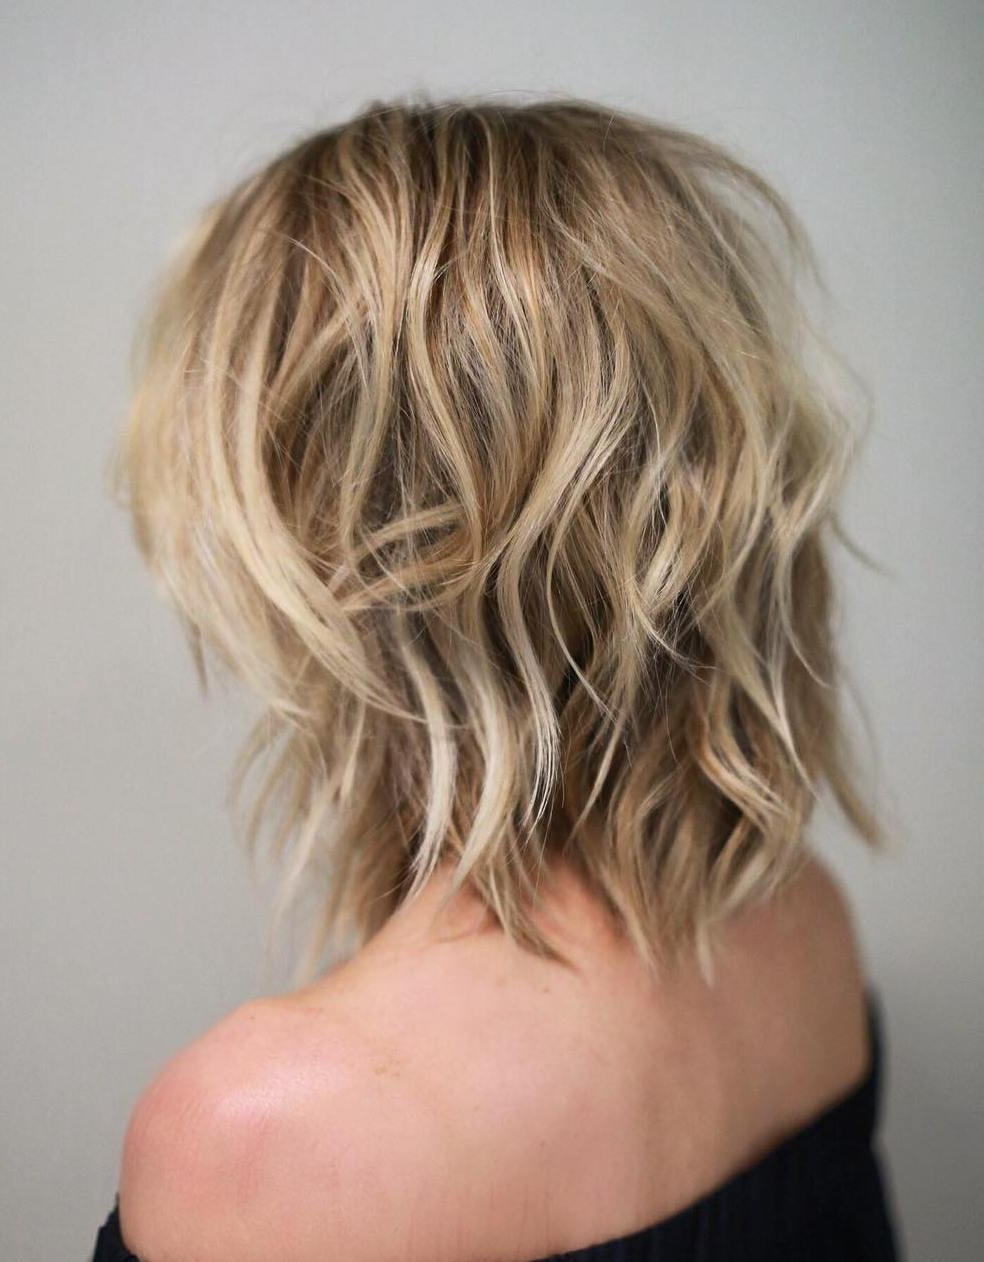 Shag Haircuts And Hairstyles In 2018 — Therighthairstyles For Cute Choppy Shaggy Short Haircuts (View 24 of 25)